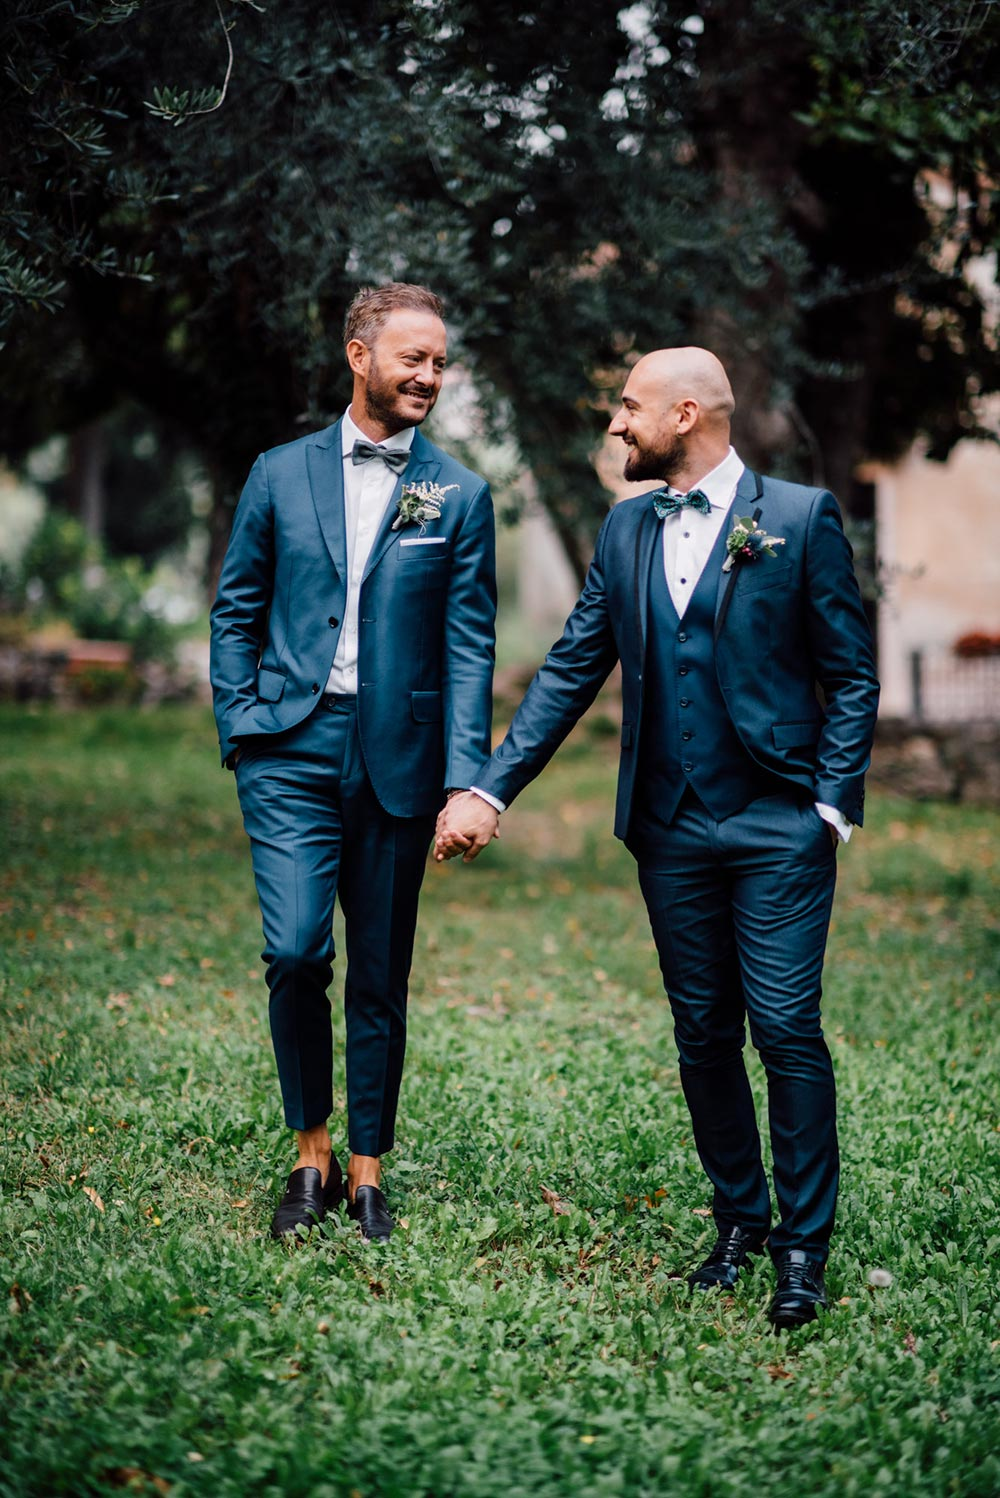 steel-blue-wedding-suits-matching-grooms